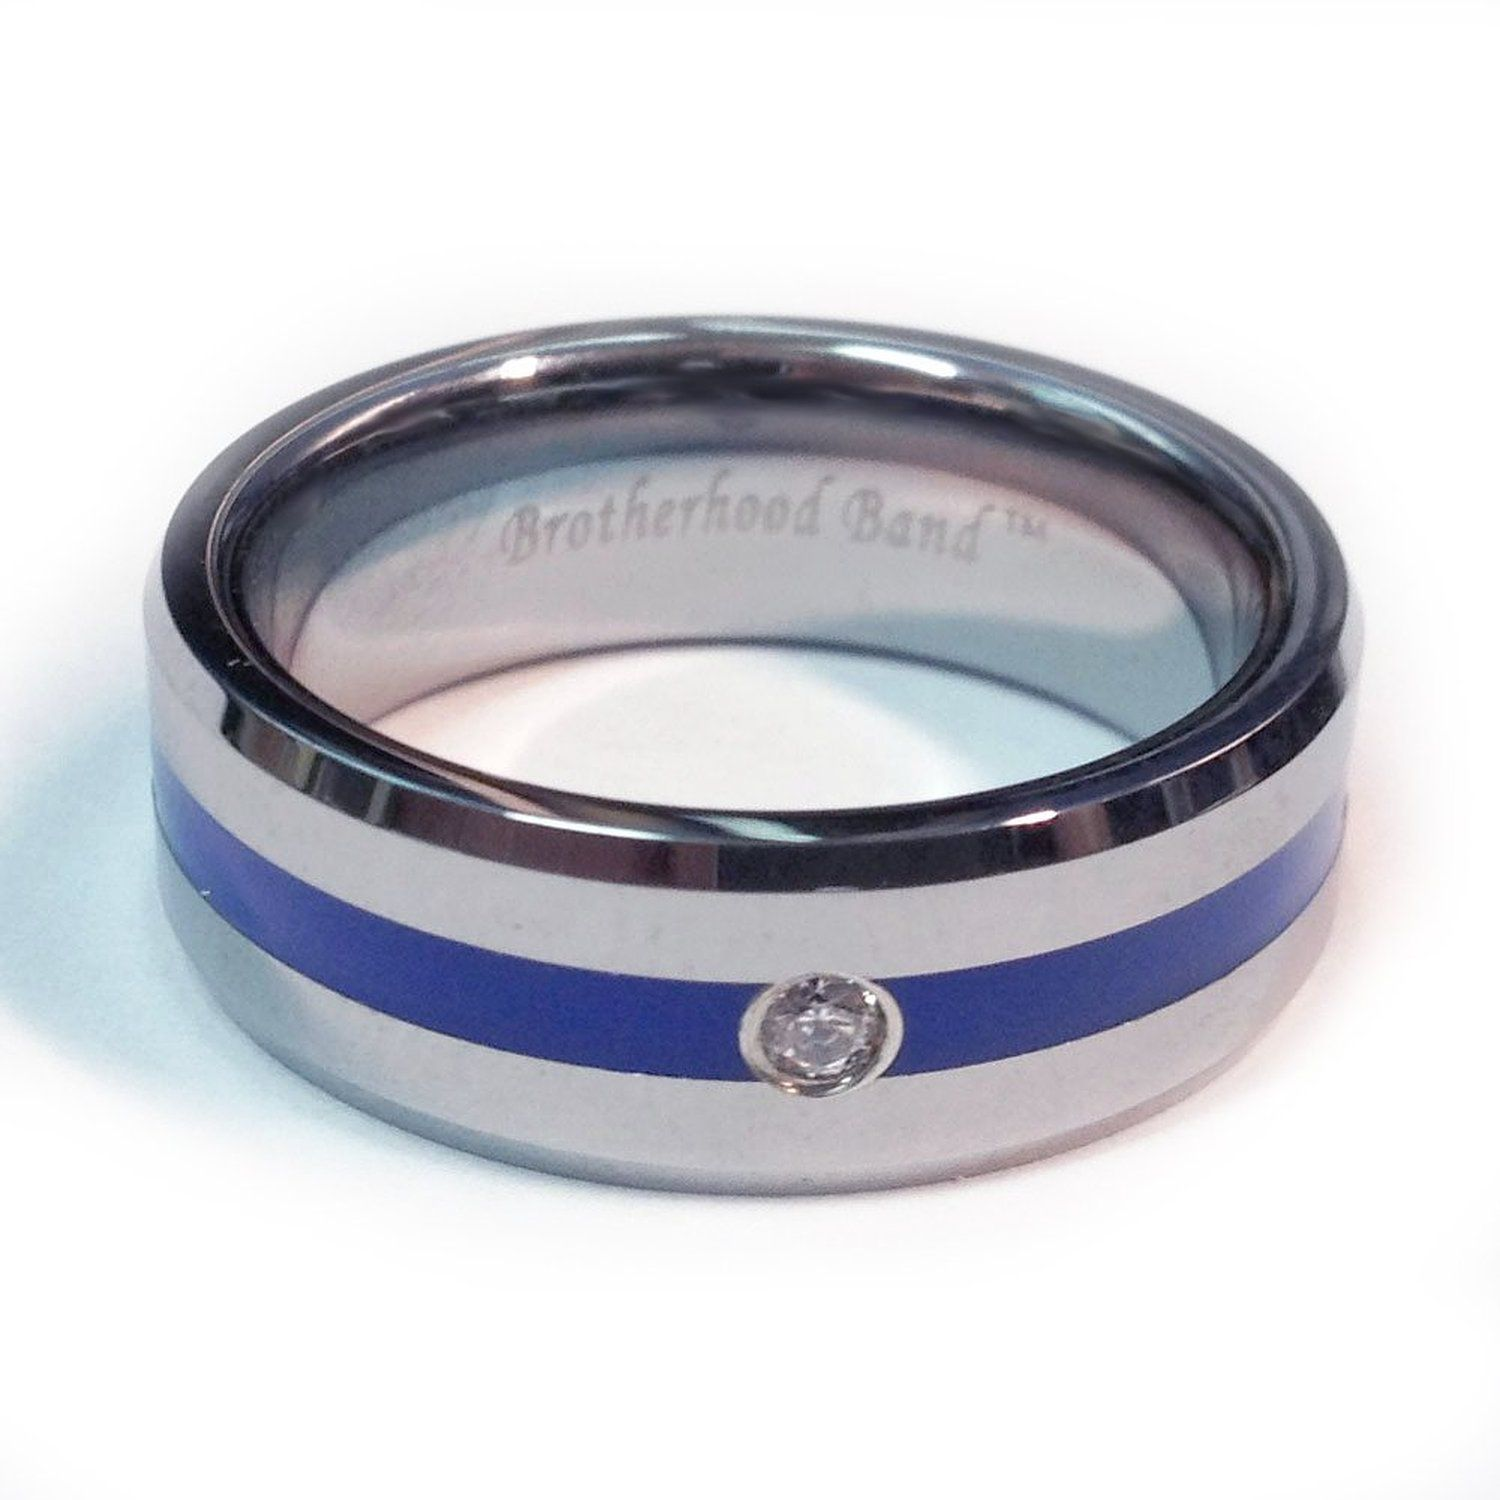 wedding pin our officer cross rings engagement tungsten ring police line carbide blue peace inlay for thin band